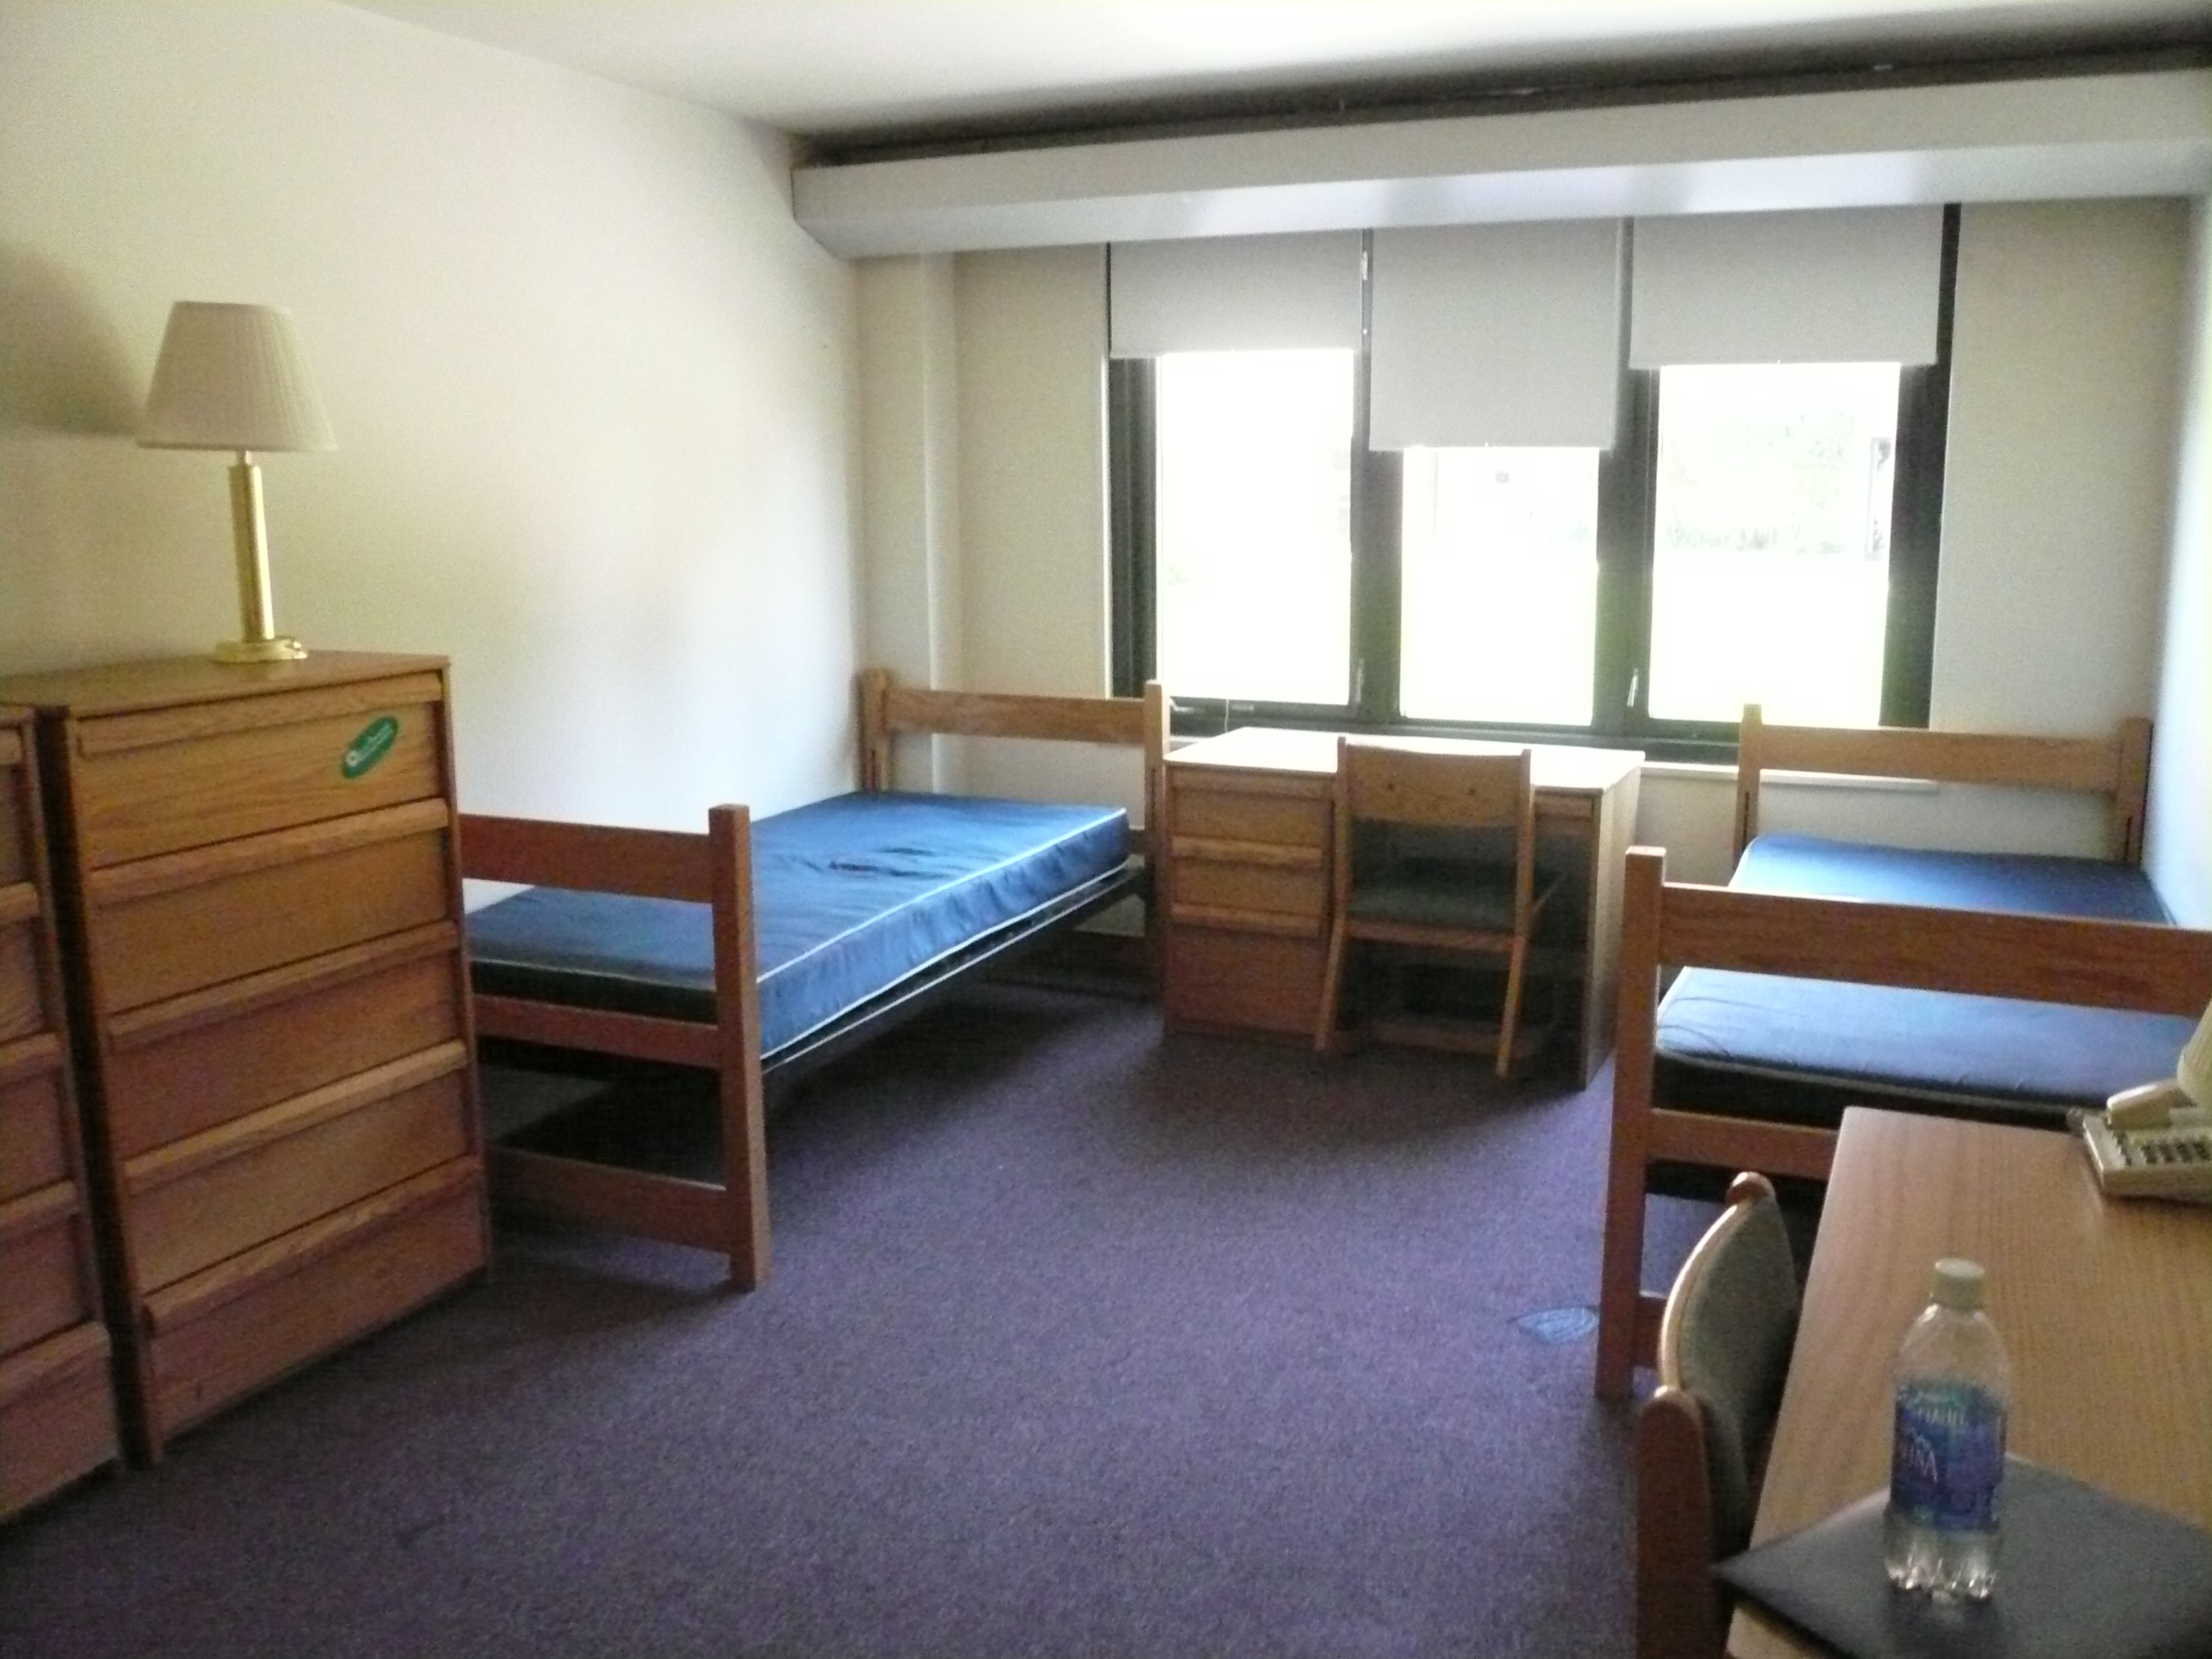 guide to texas universities cooperative housing is cheaper than a dormitory and it is a good place for